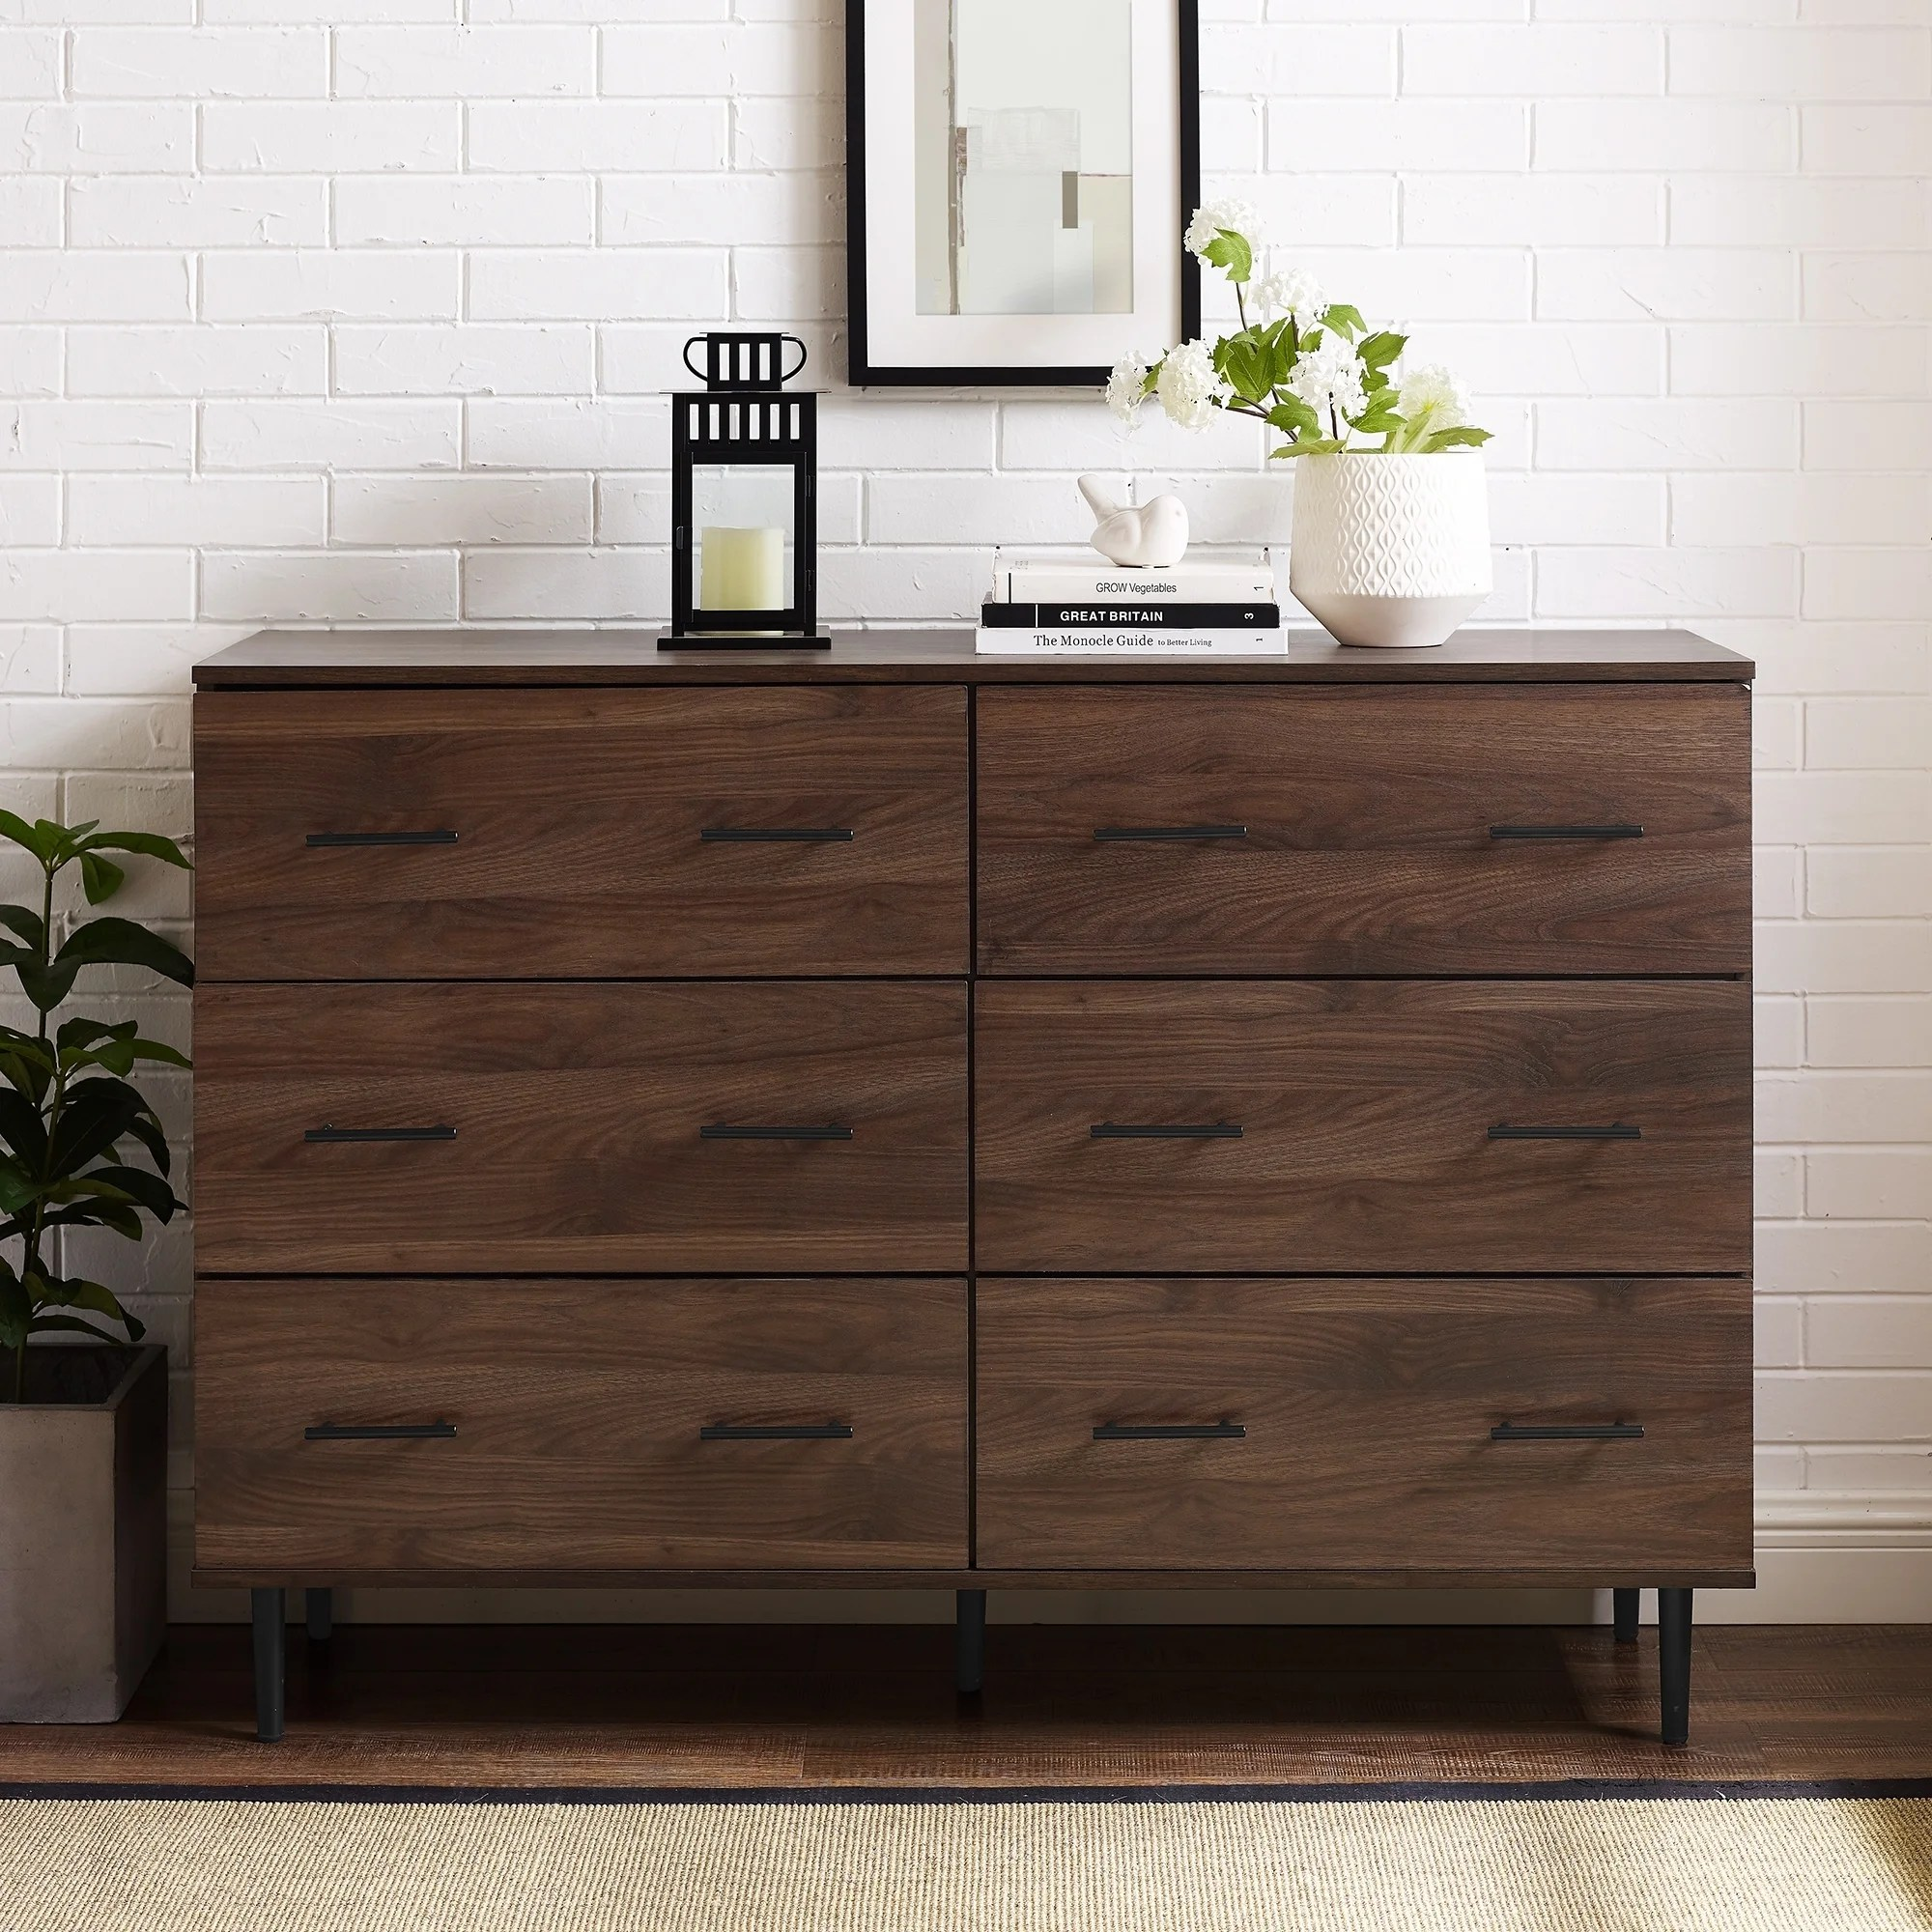 Where Buy Dressers Online